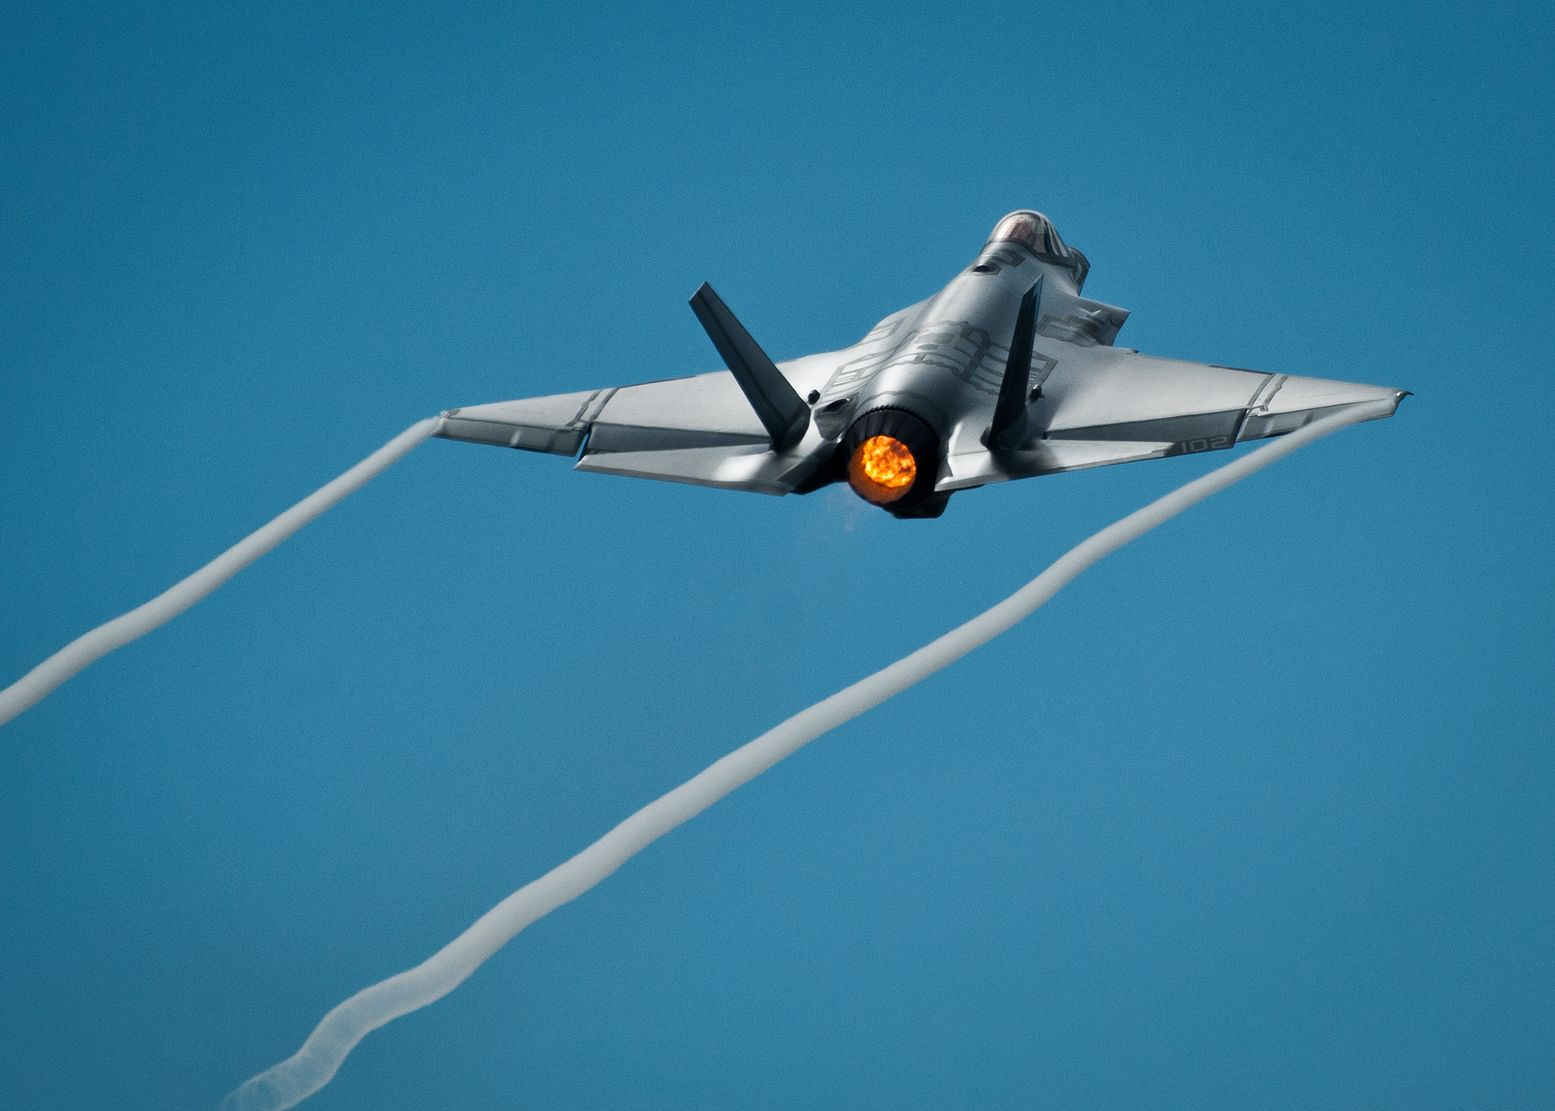 How One Bird Caused over $2 Million Damage to an F-35